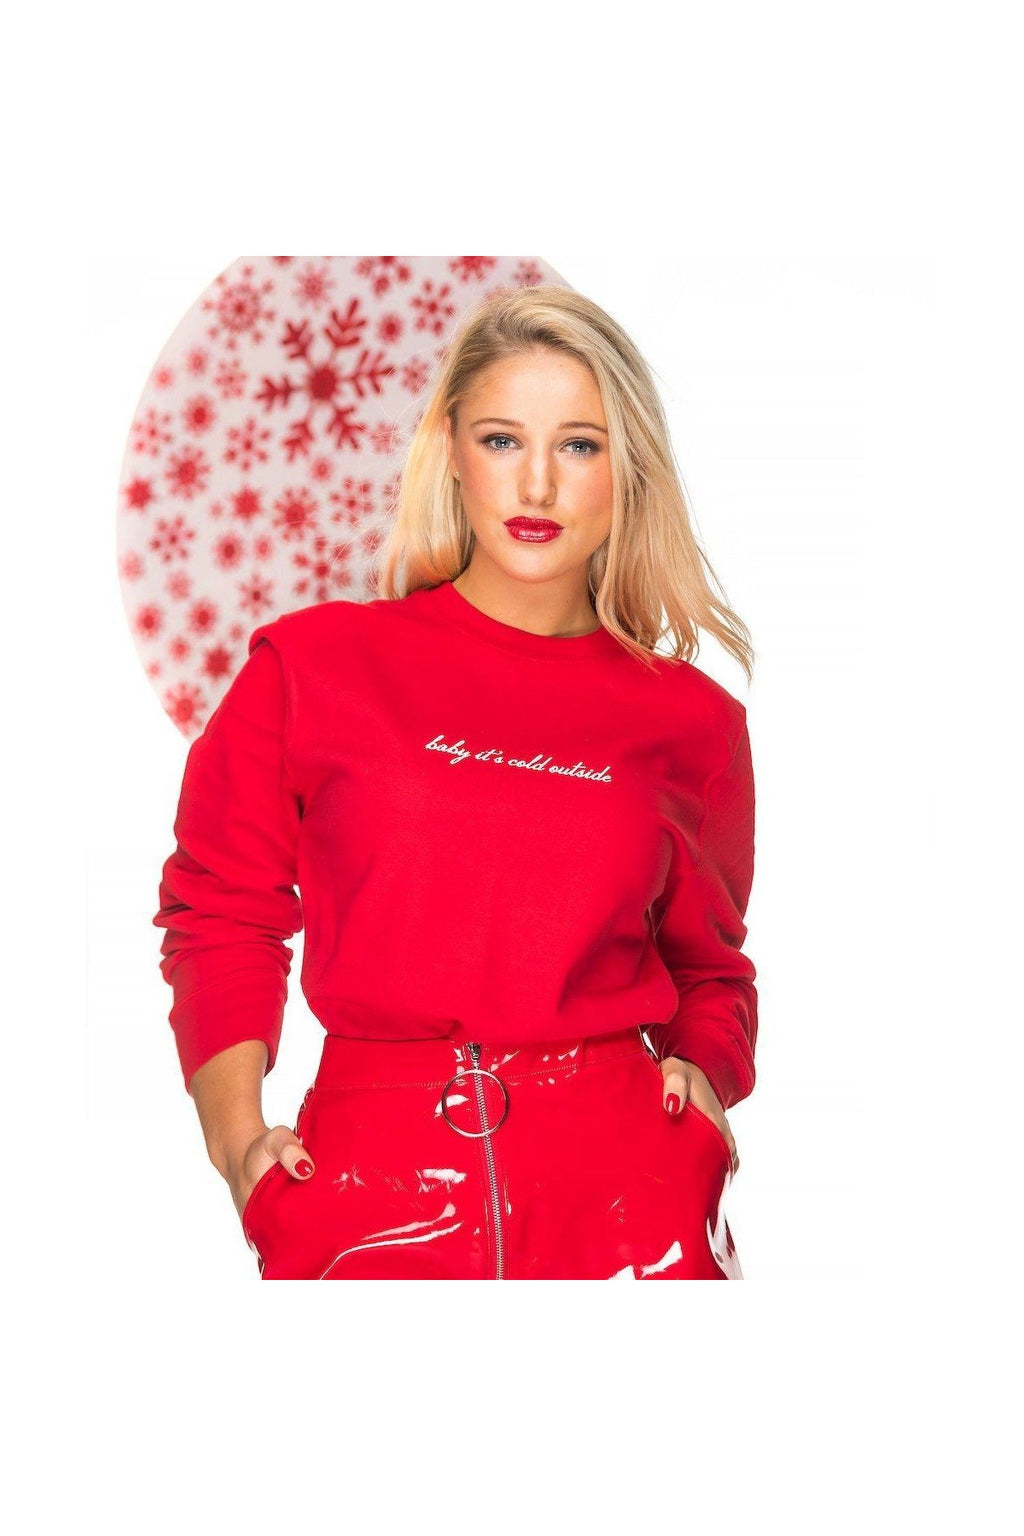 'Baby it's cold outside' Christmas Sweatshirt